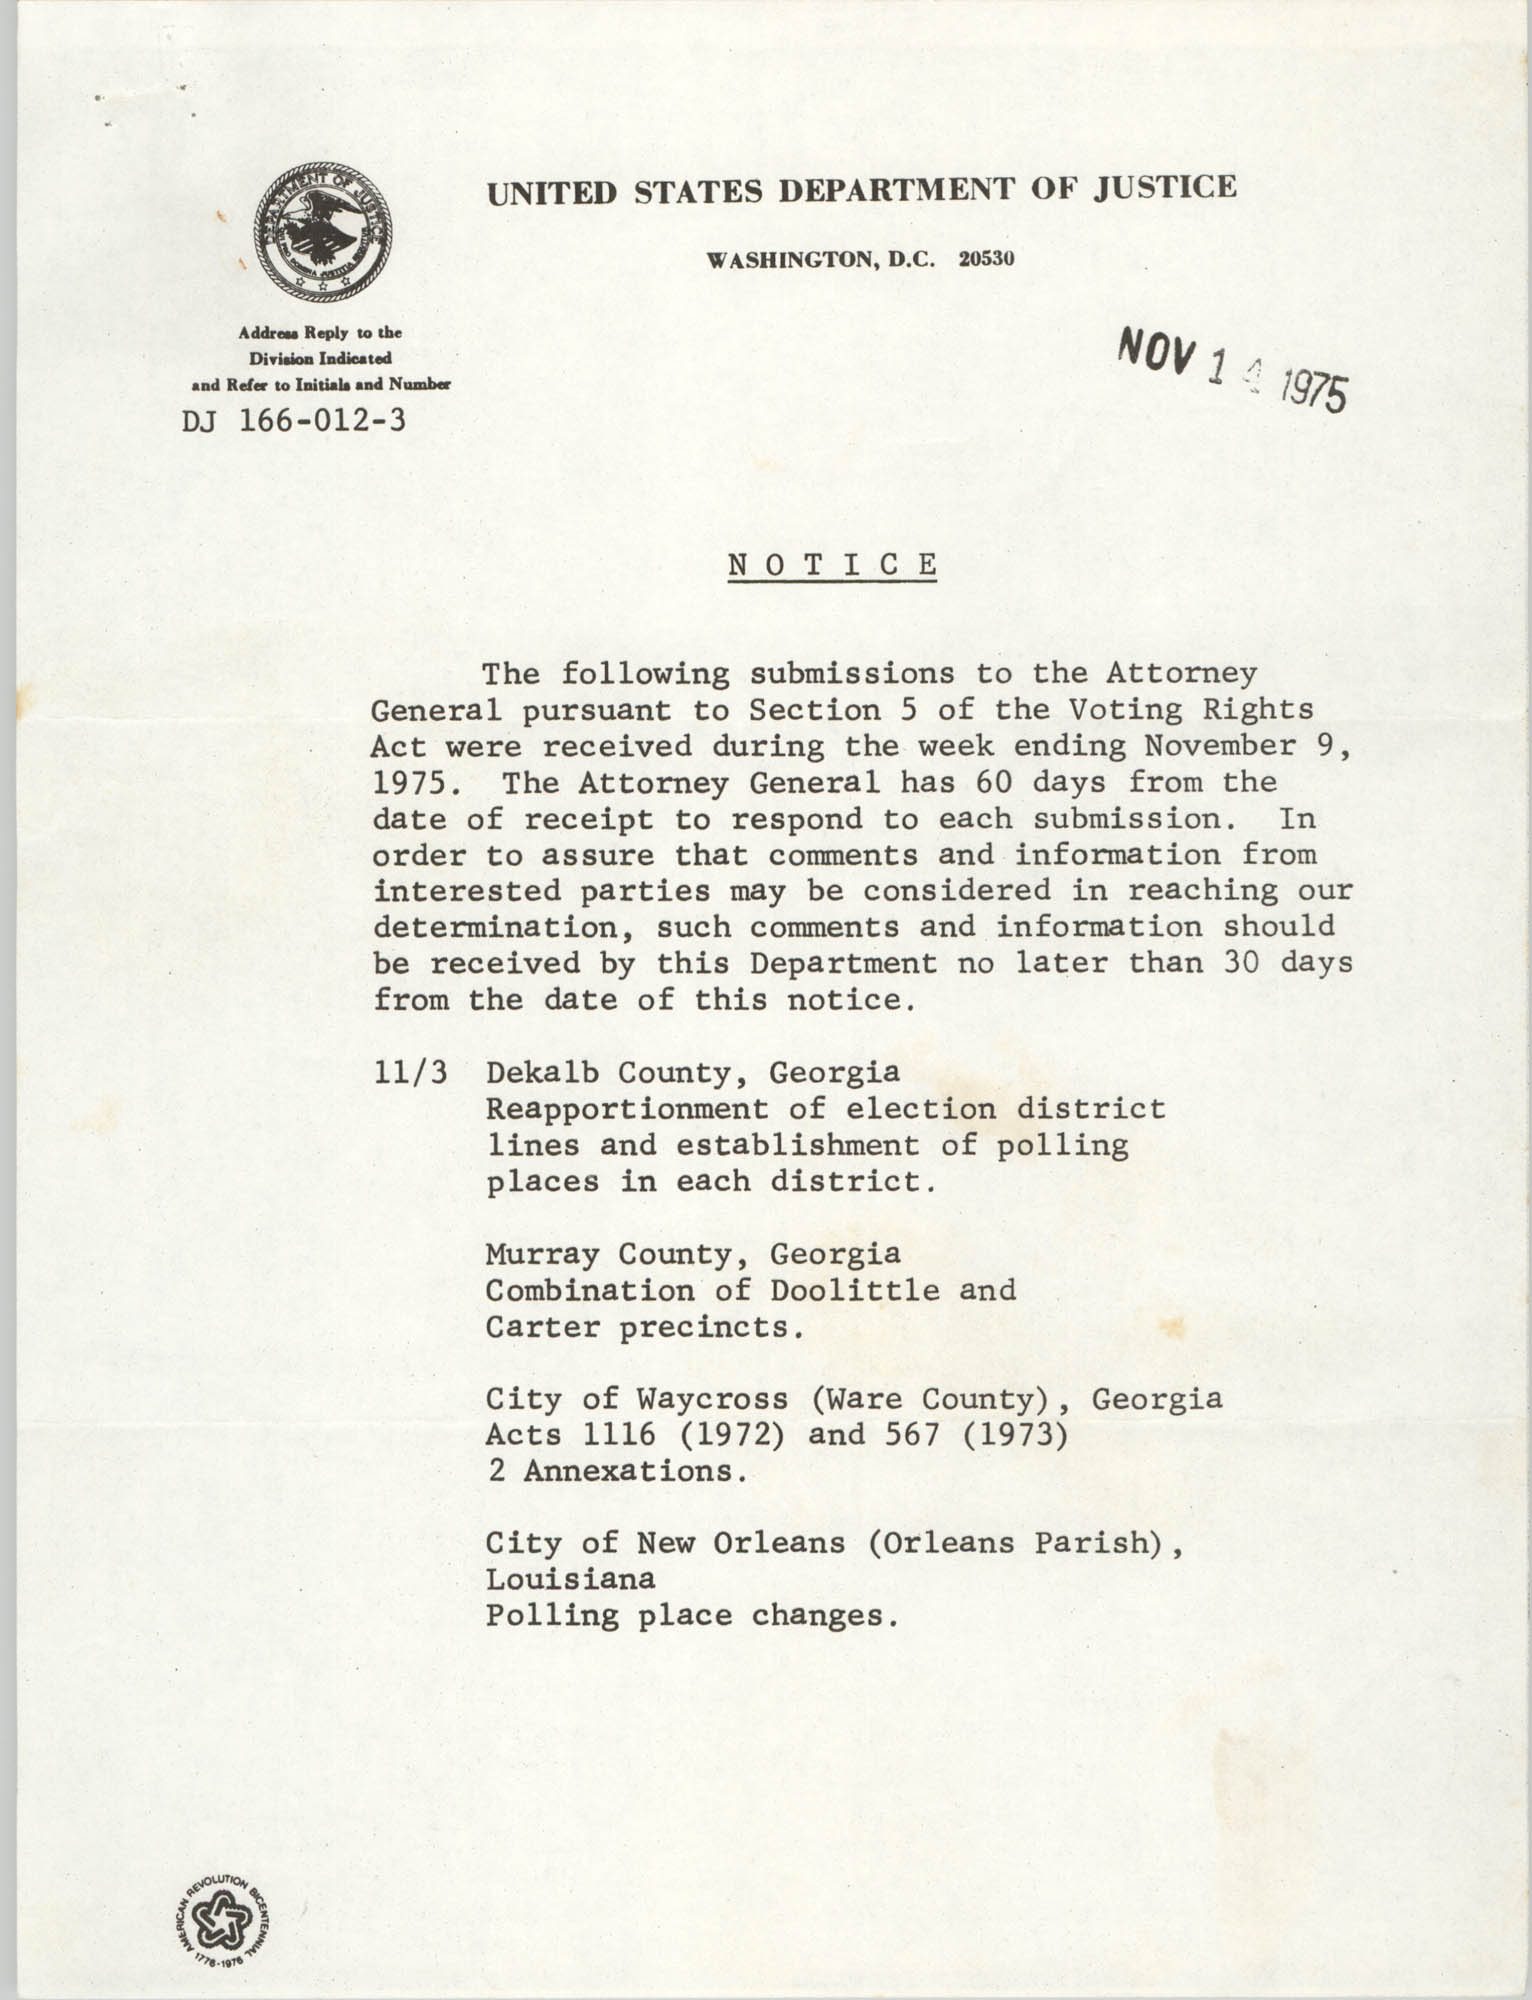 United States Department of Justice Notice, November 14, 1975